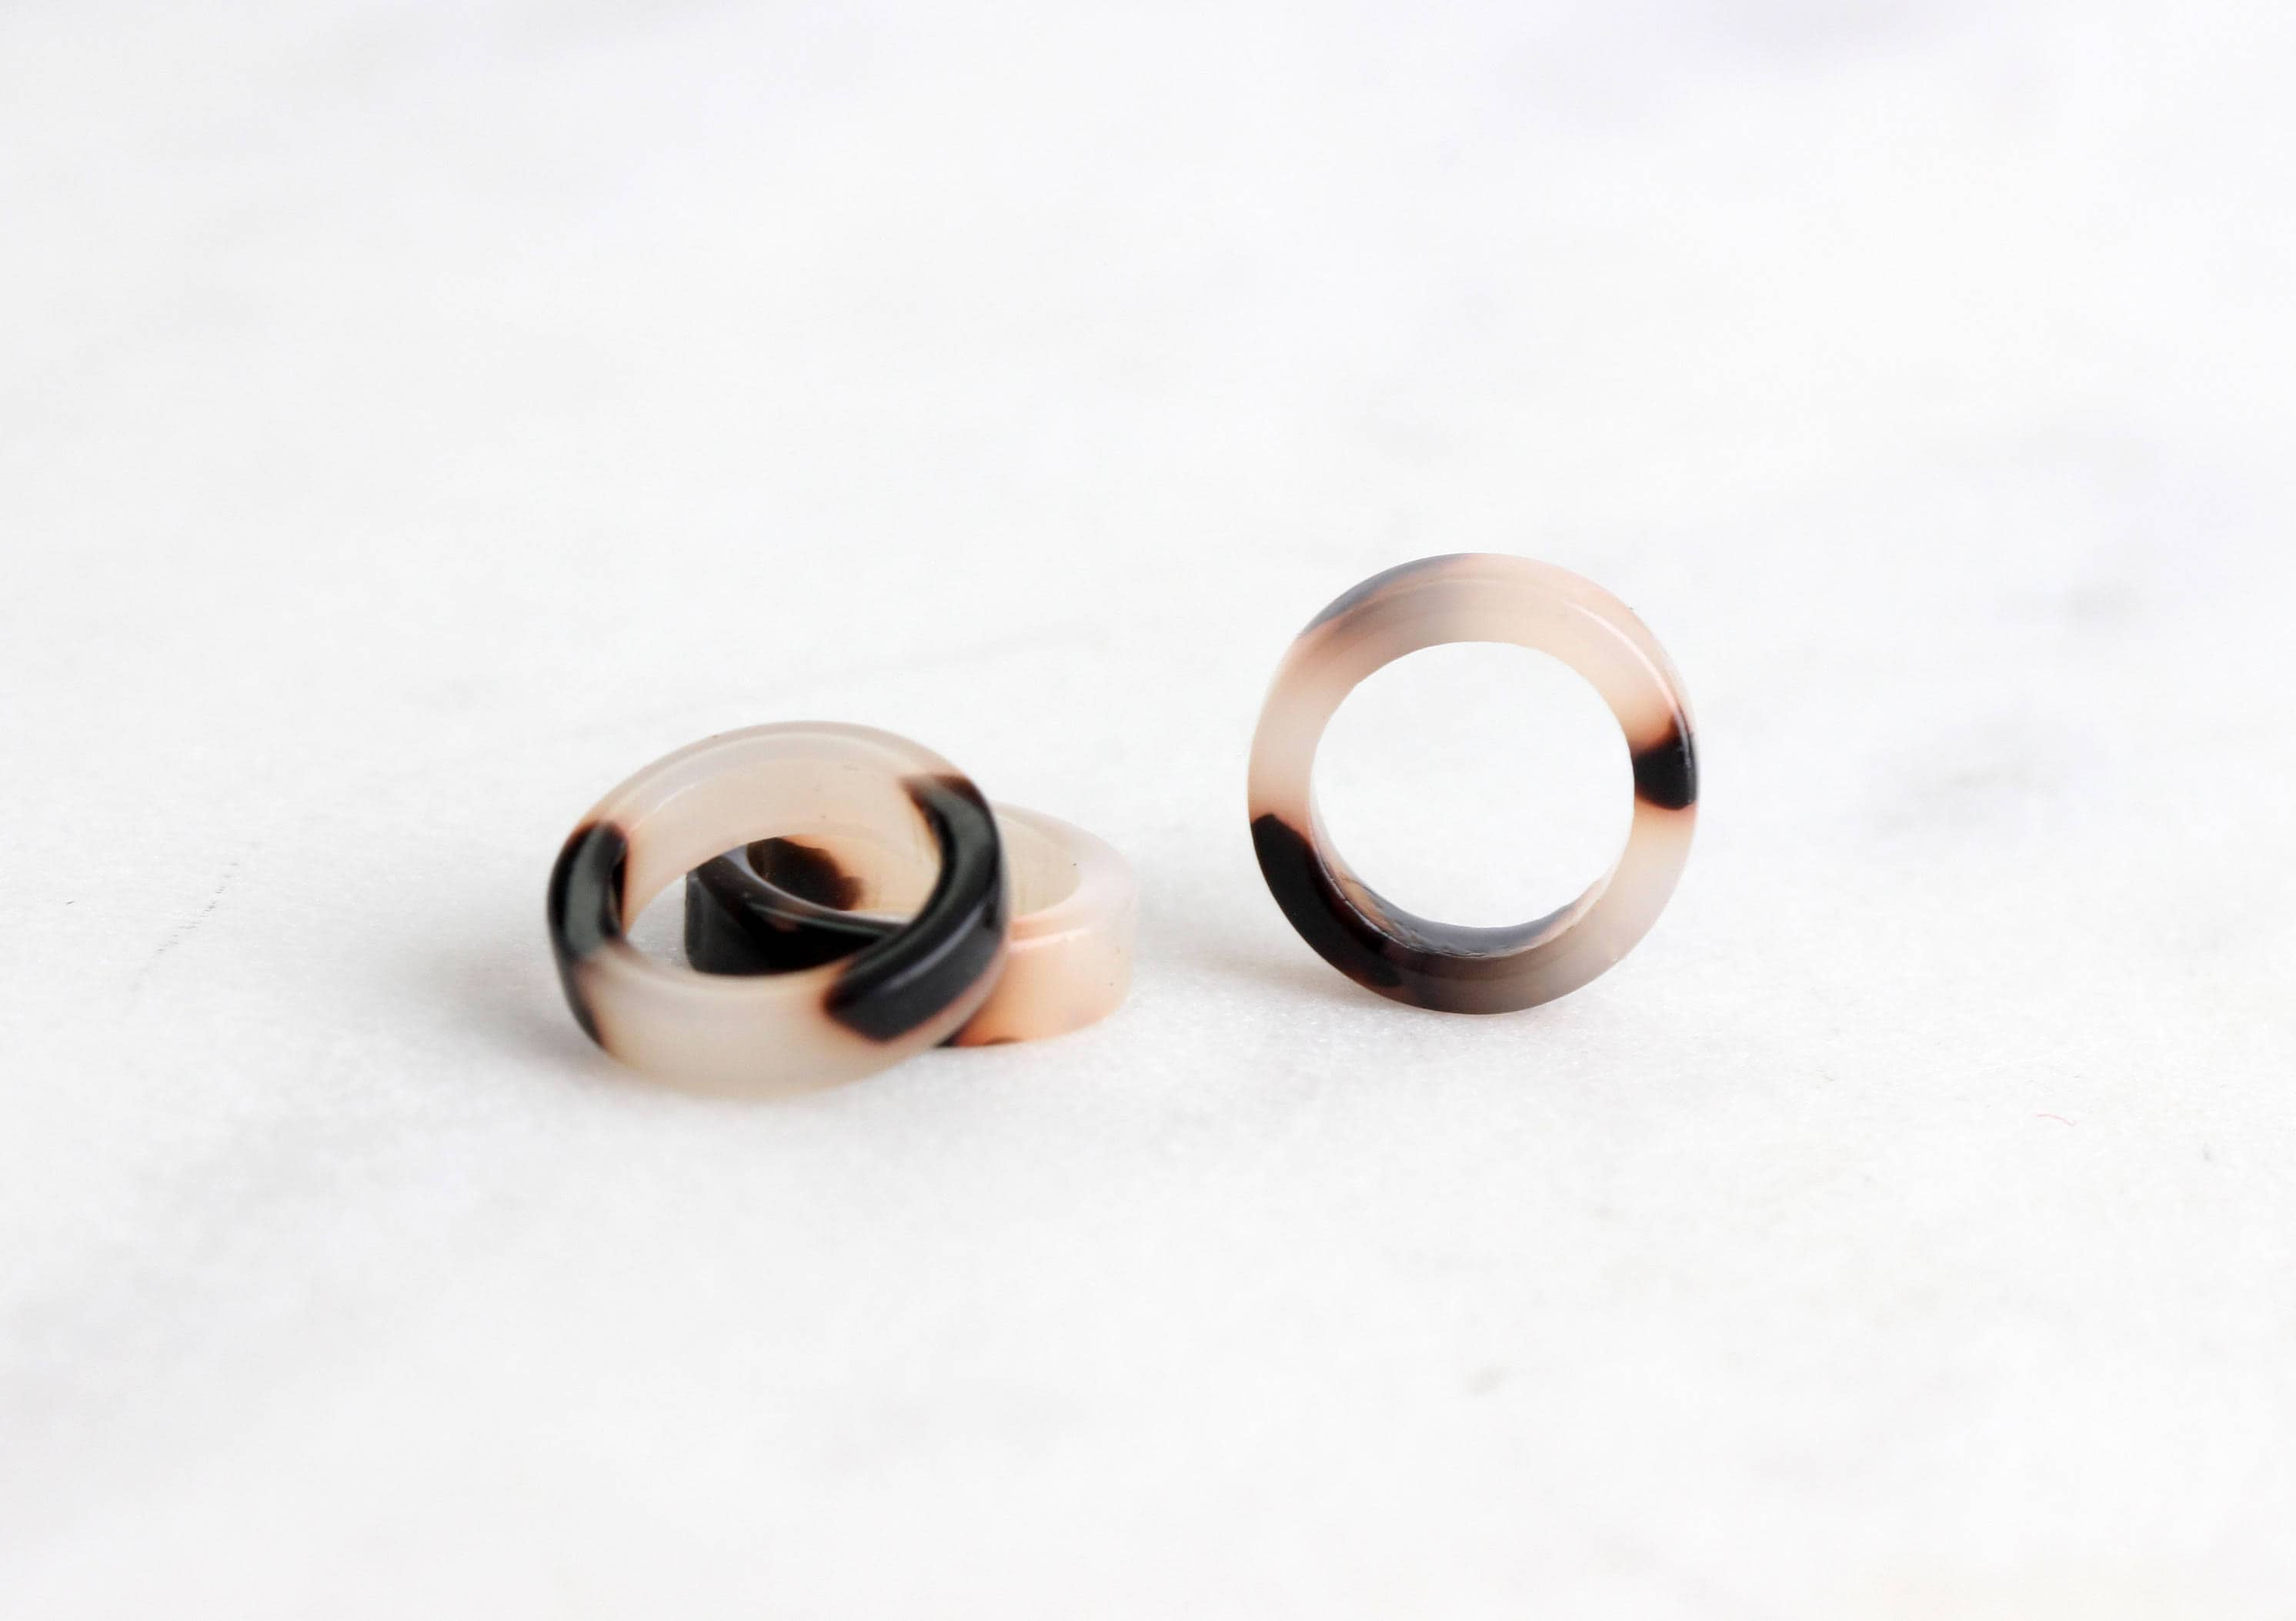 4 Tiny Rings 10mm, White Tortoise Links, Closed Jumpring, Small ...